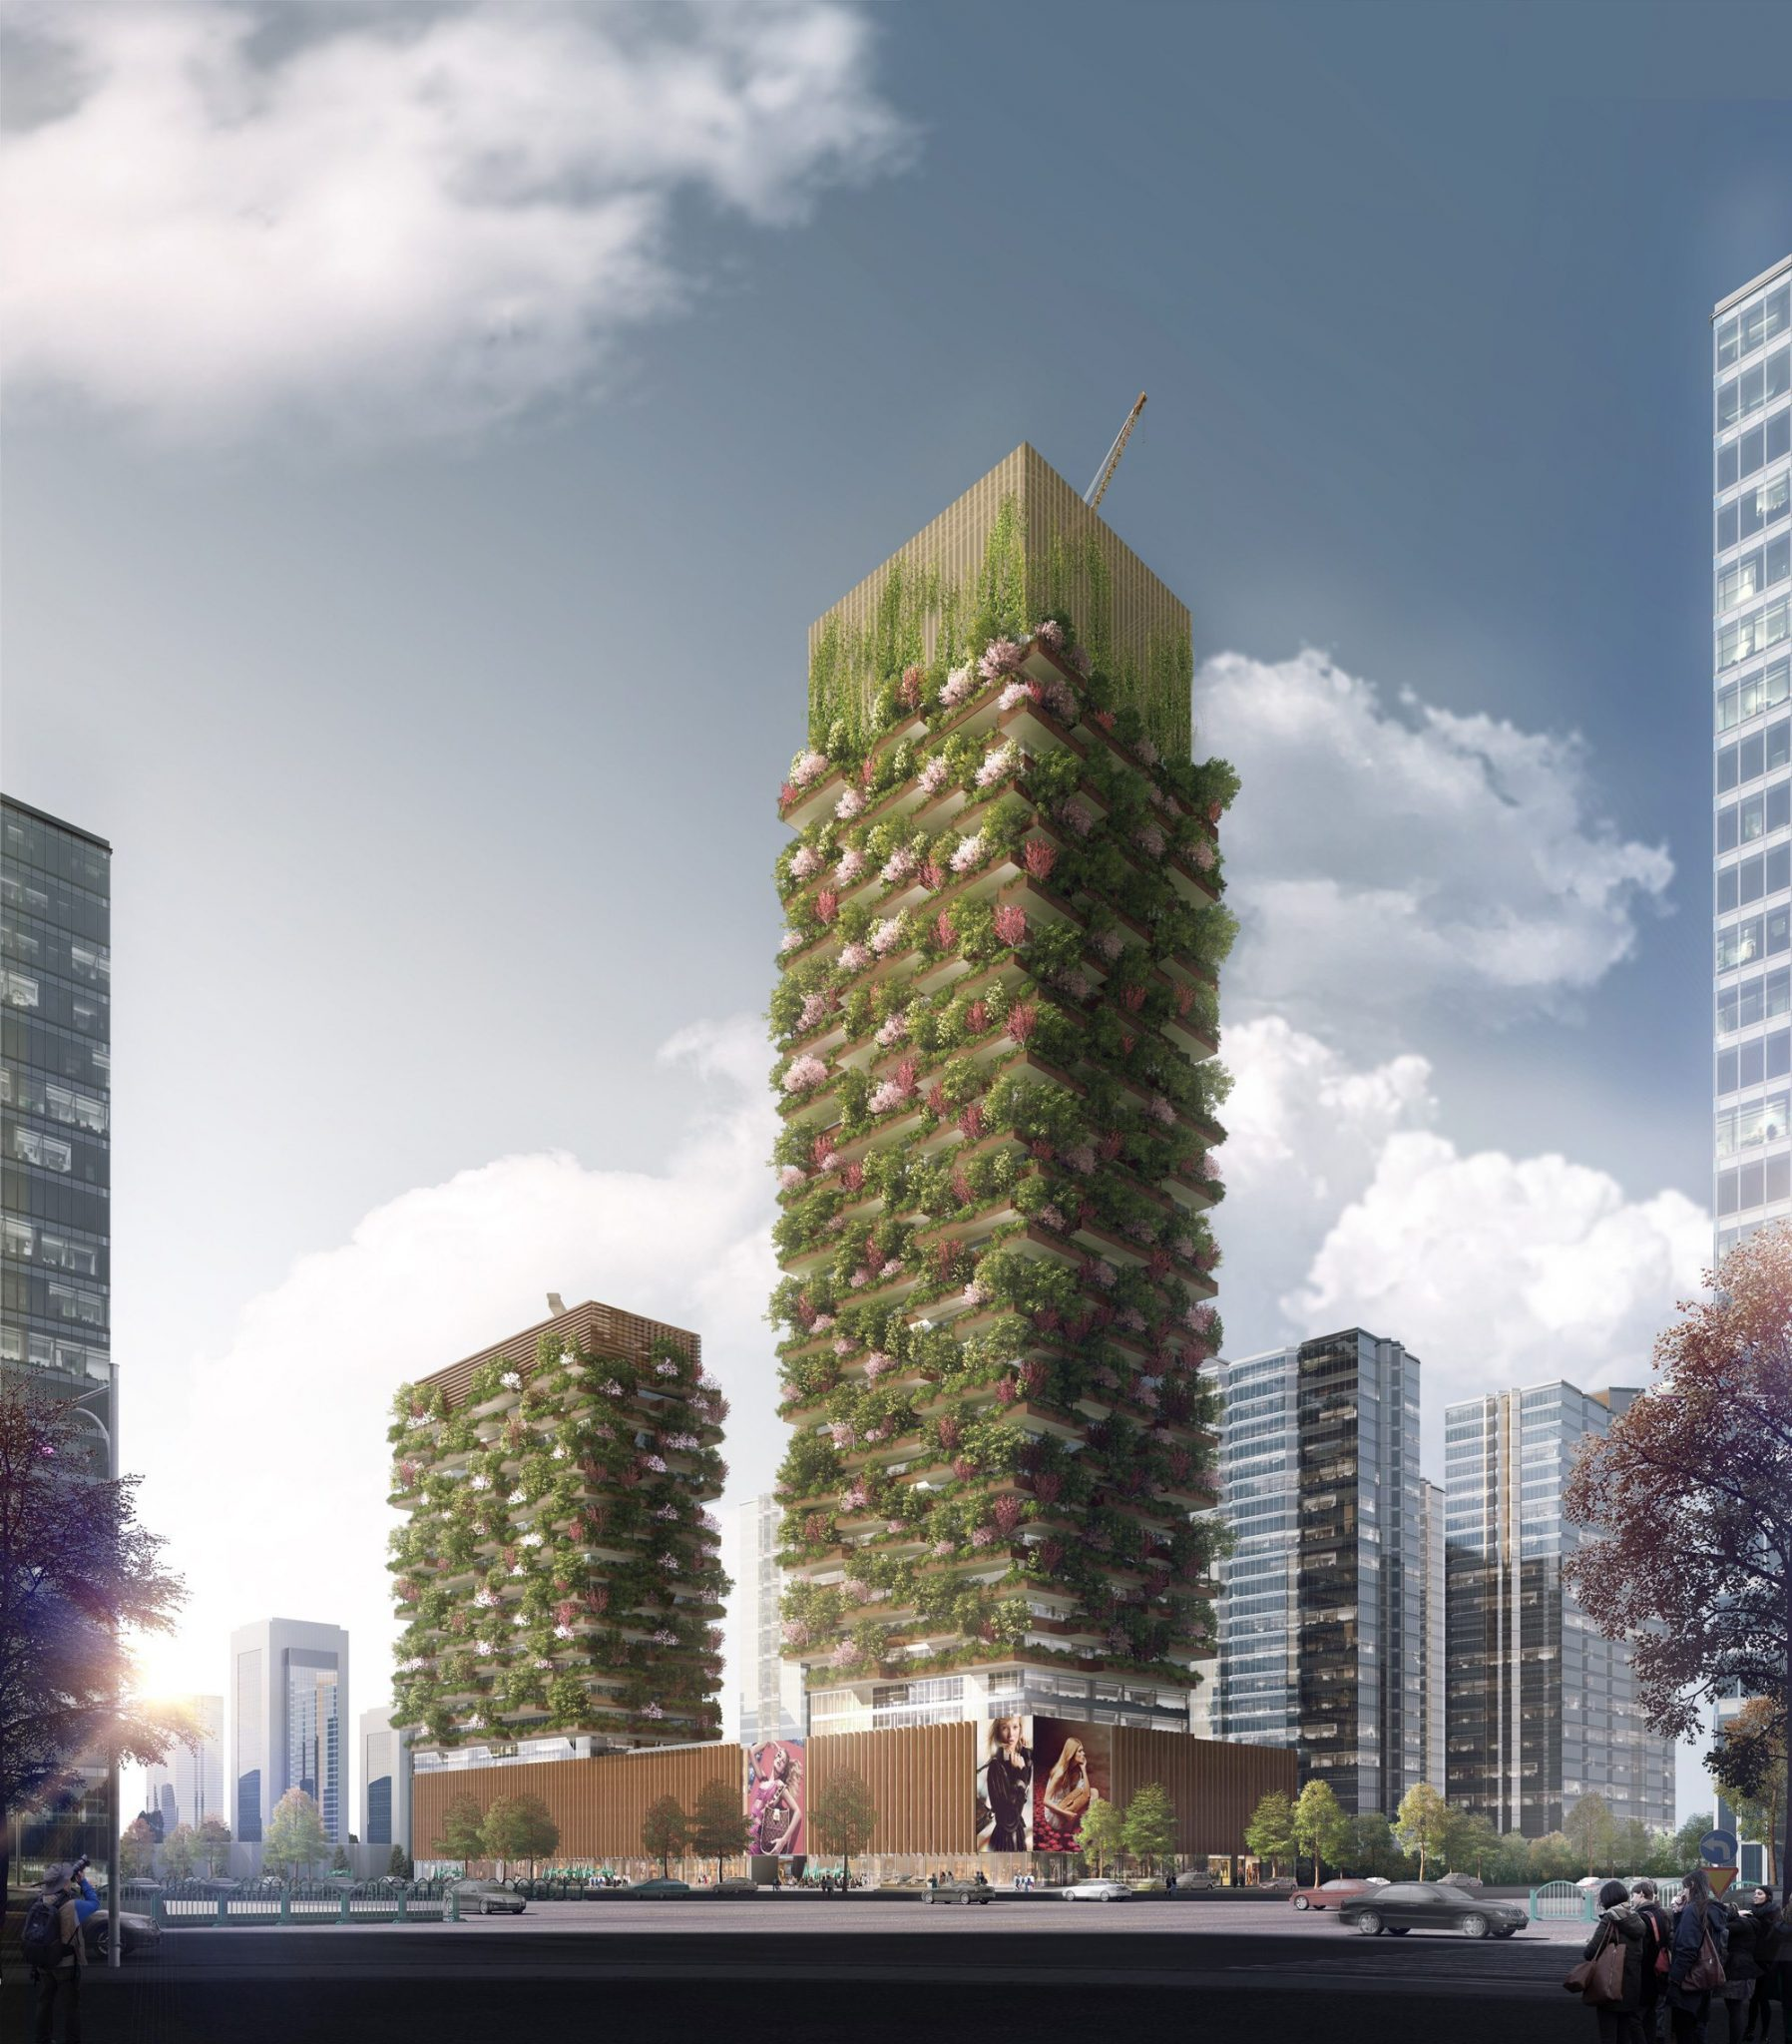 Jardins verticaux - Nanchino, Jiangsu, Chine architecture 4 architecture Leaders That Will Change the World Nanjing Vertical Forest Stefano Boeri Architetti 1